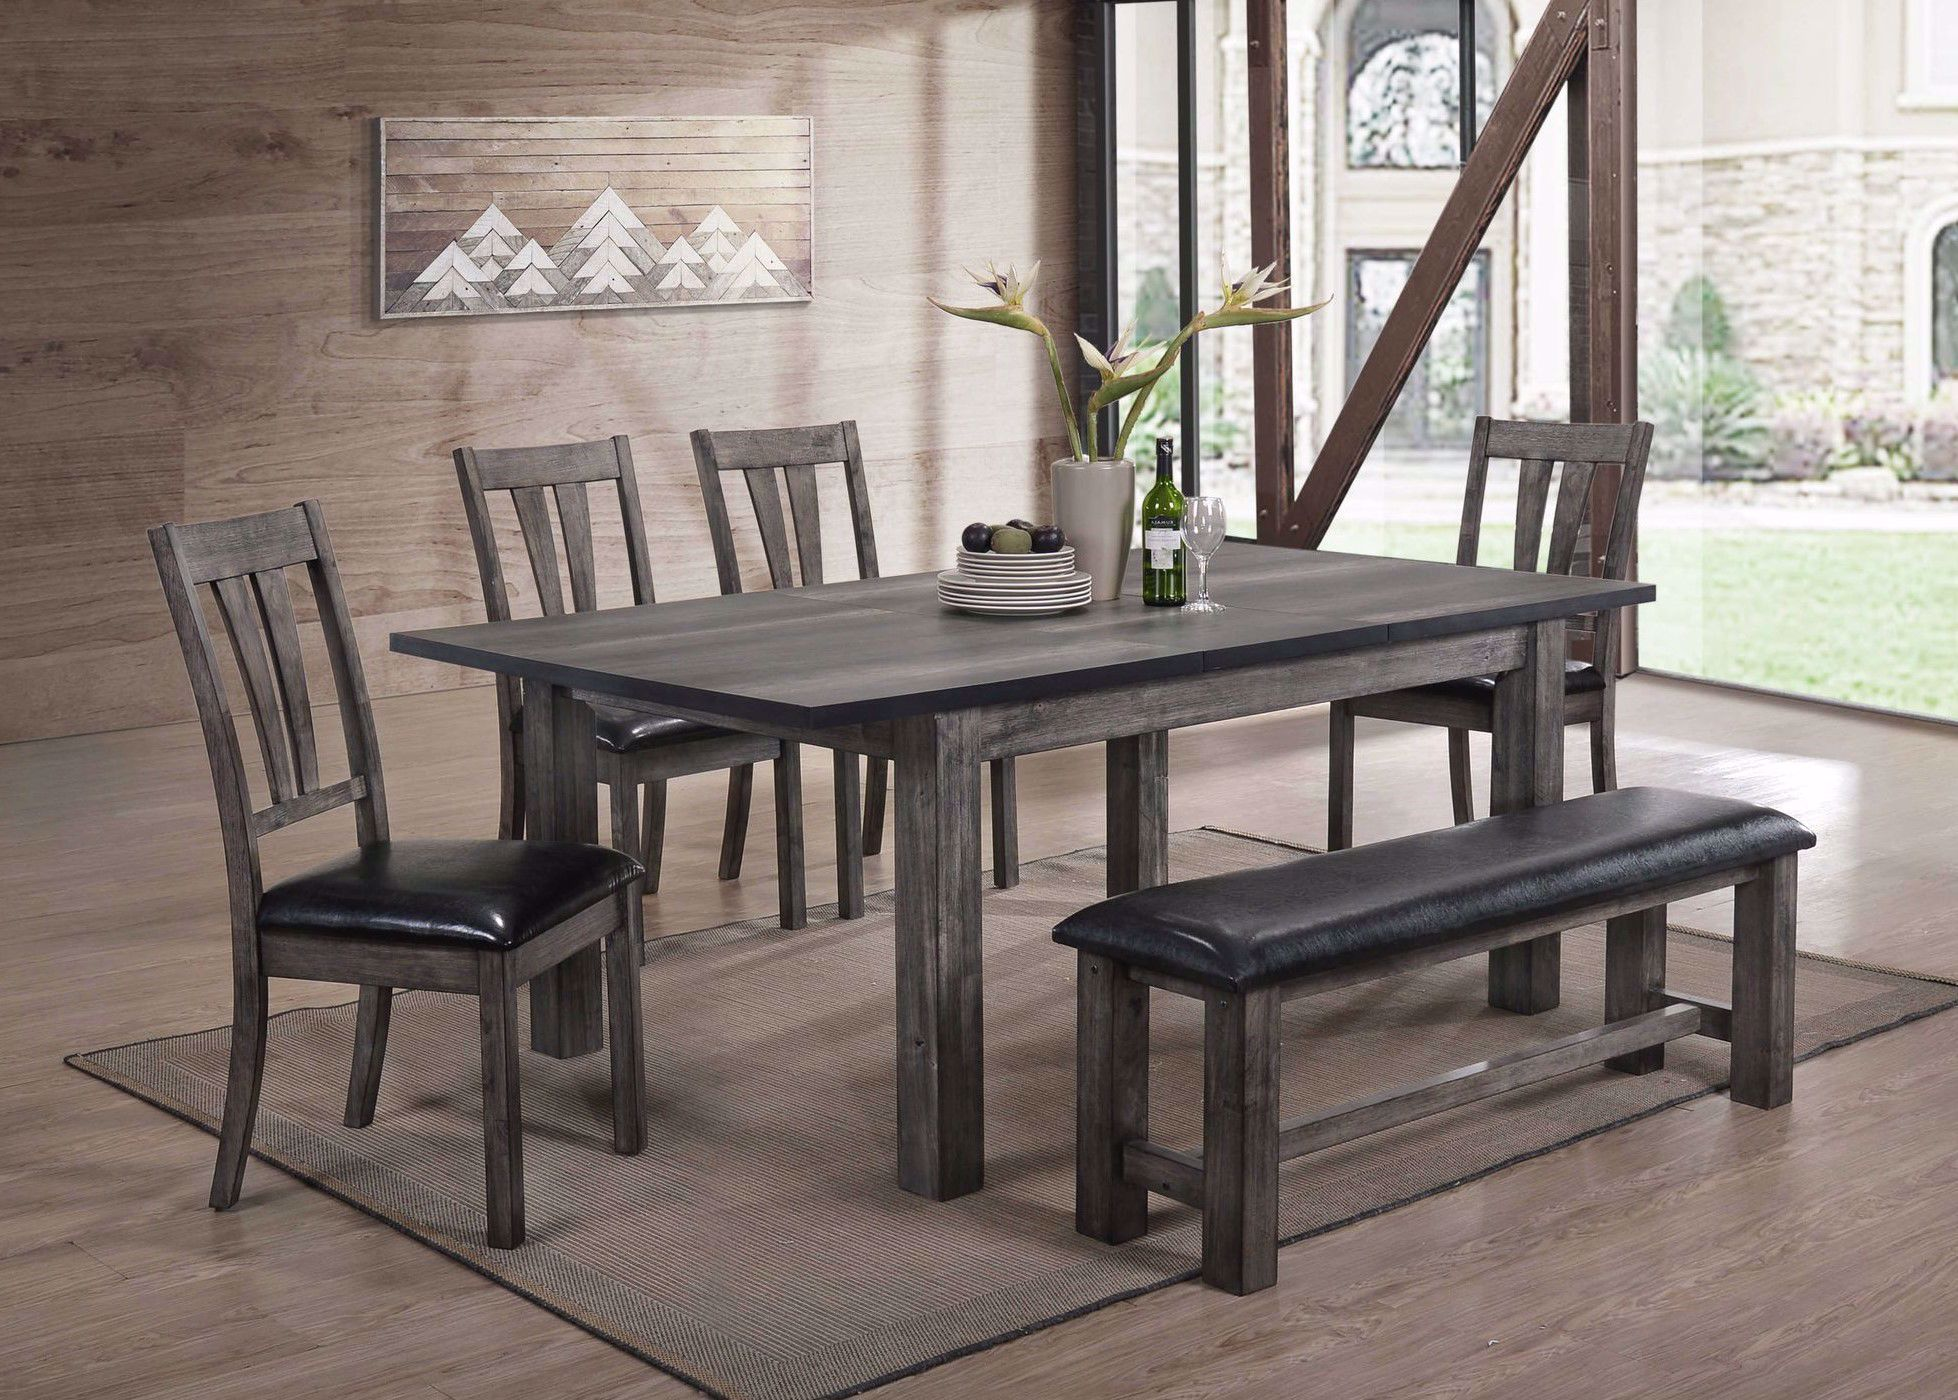 Picture of Nathan Dining Set with 4 Chairs and 1 Bench